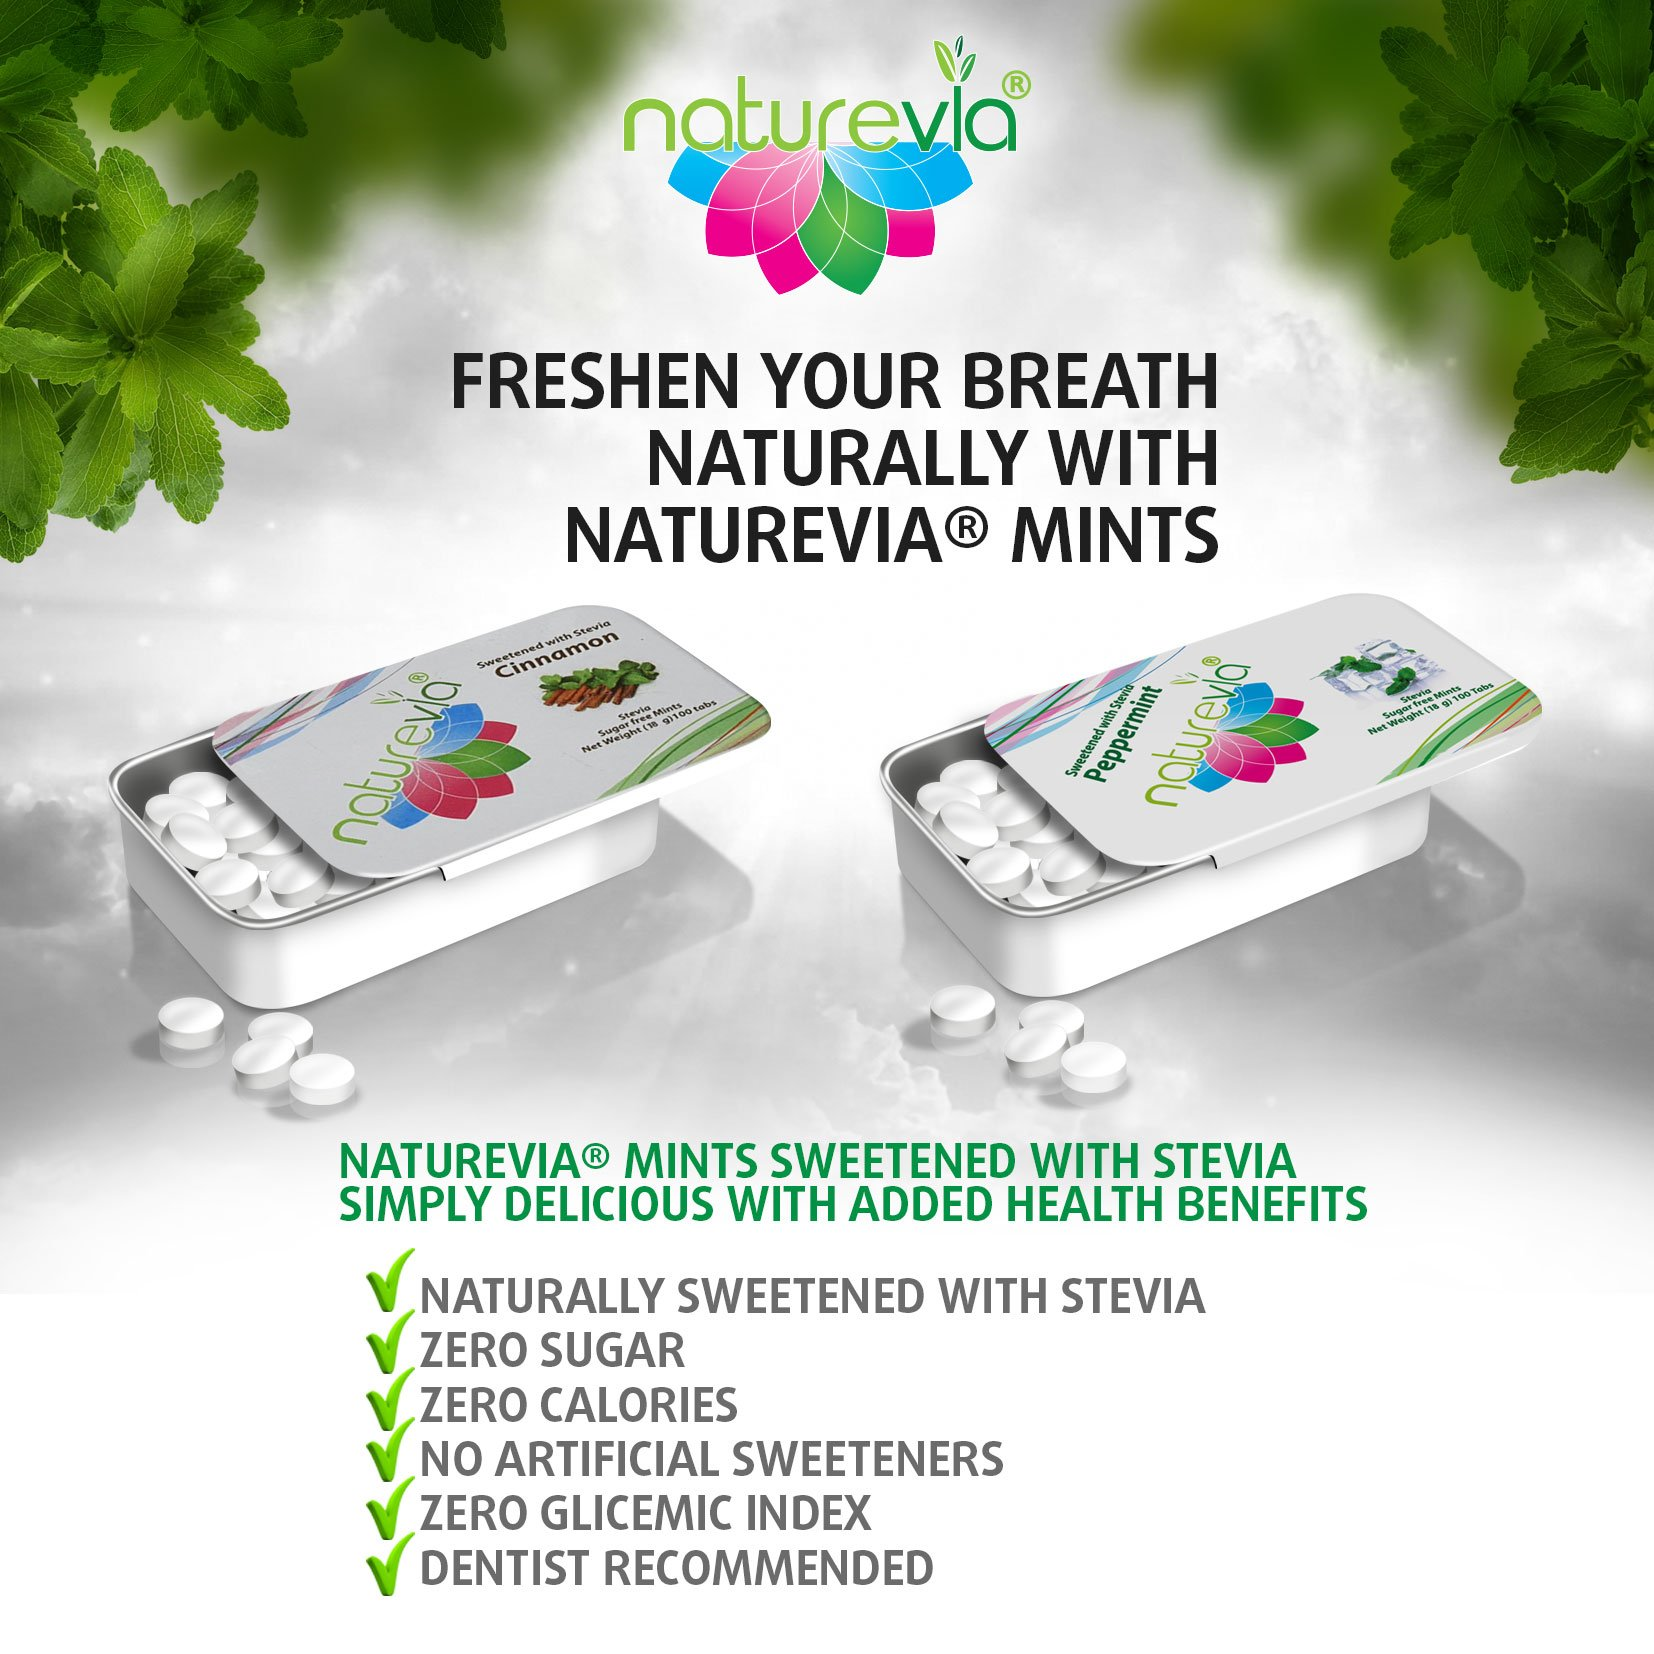 Sugar-Free Mints - Cinnamon Flavor (12 PACK-100 tabs 18 g): Mints Naturally Sweetened with Stevia, Free of: Sugar, Carbs, Calories, Glycemic Index, Aspartame ; Dentist Recommended by Naturevia (Image #4)